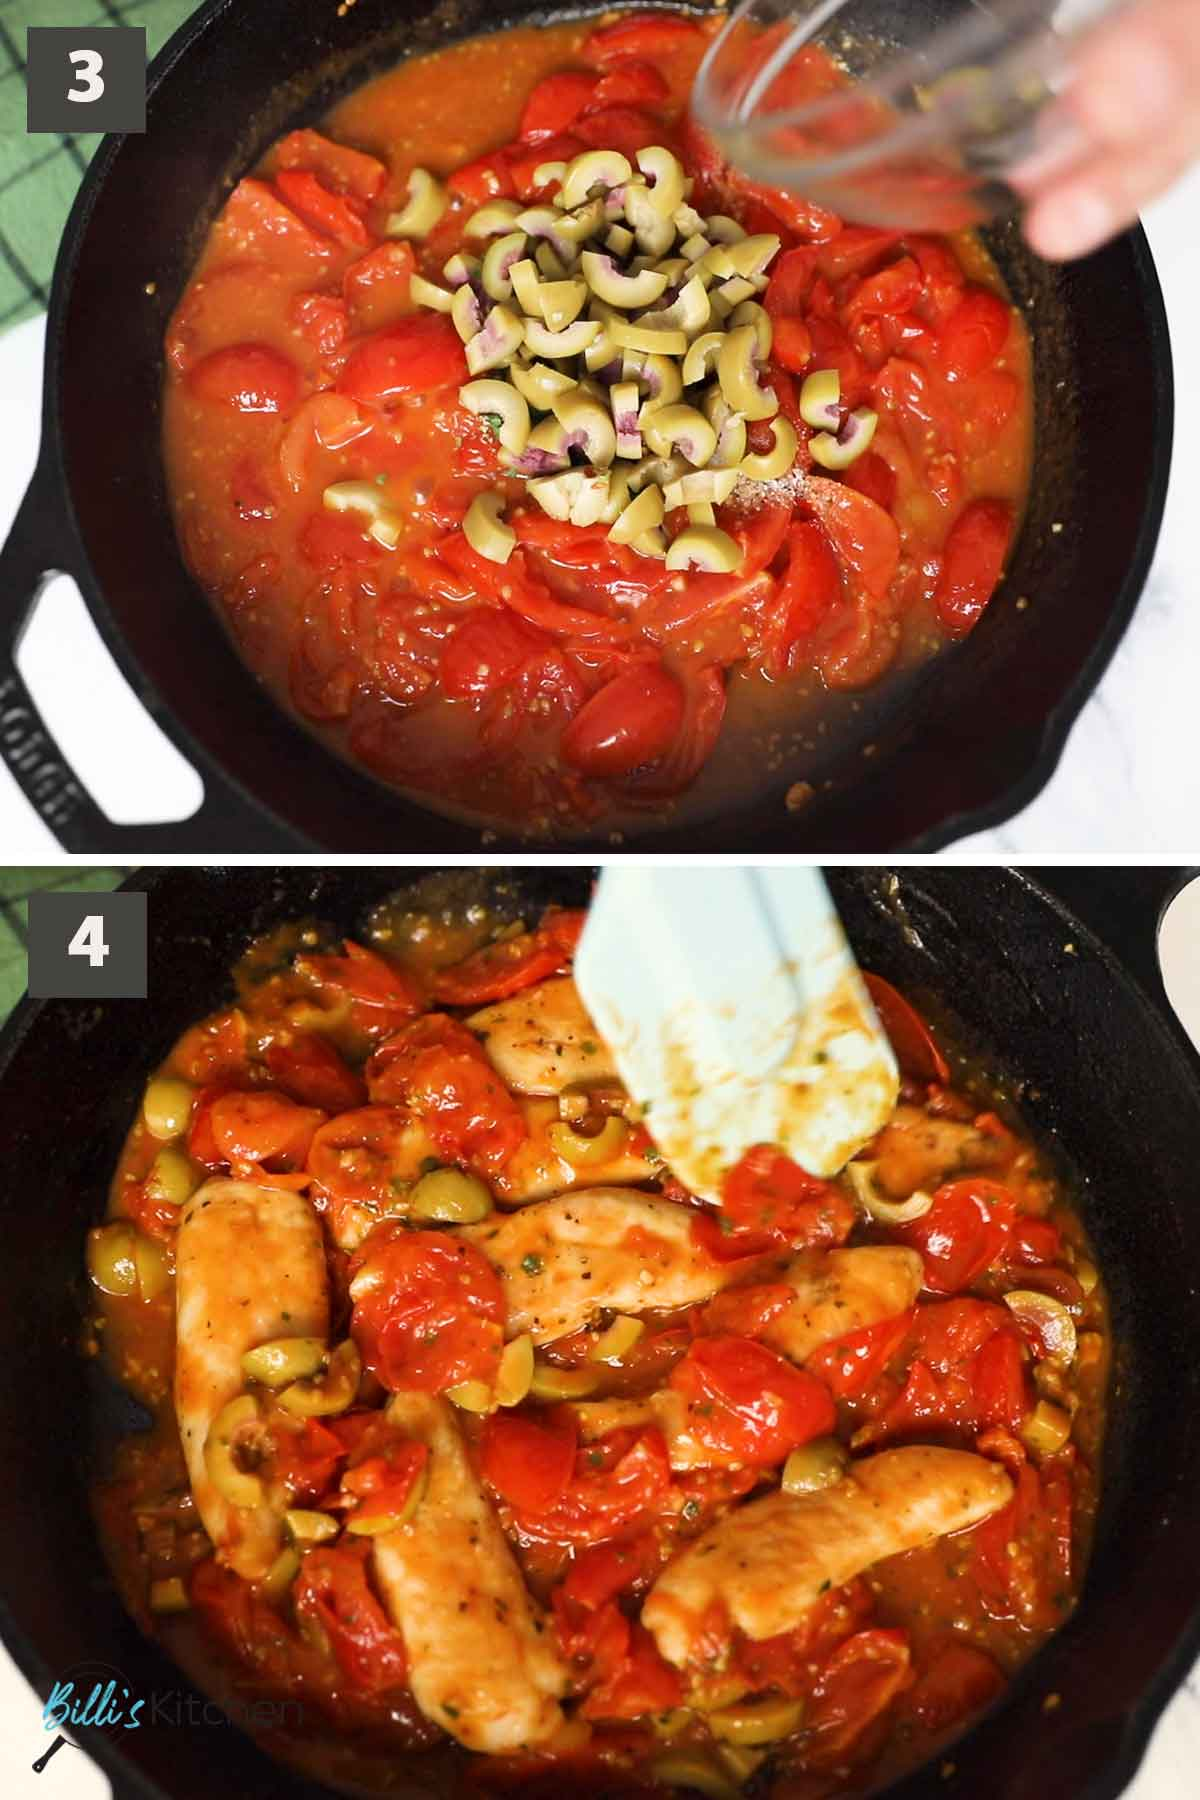 Second part of a collage of images showing the step by step process of preparing chicken and tomatoes.